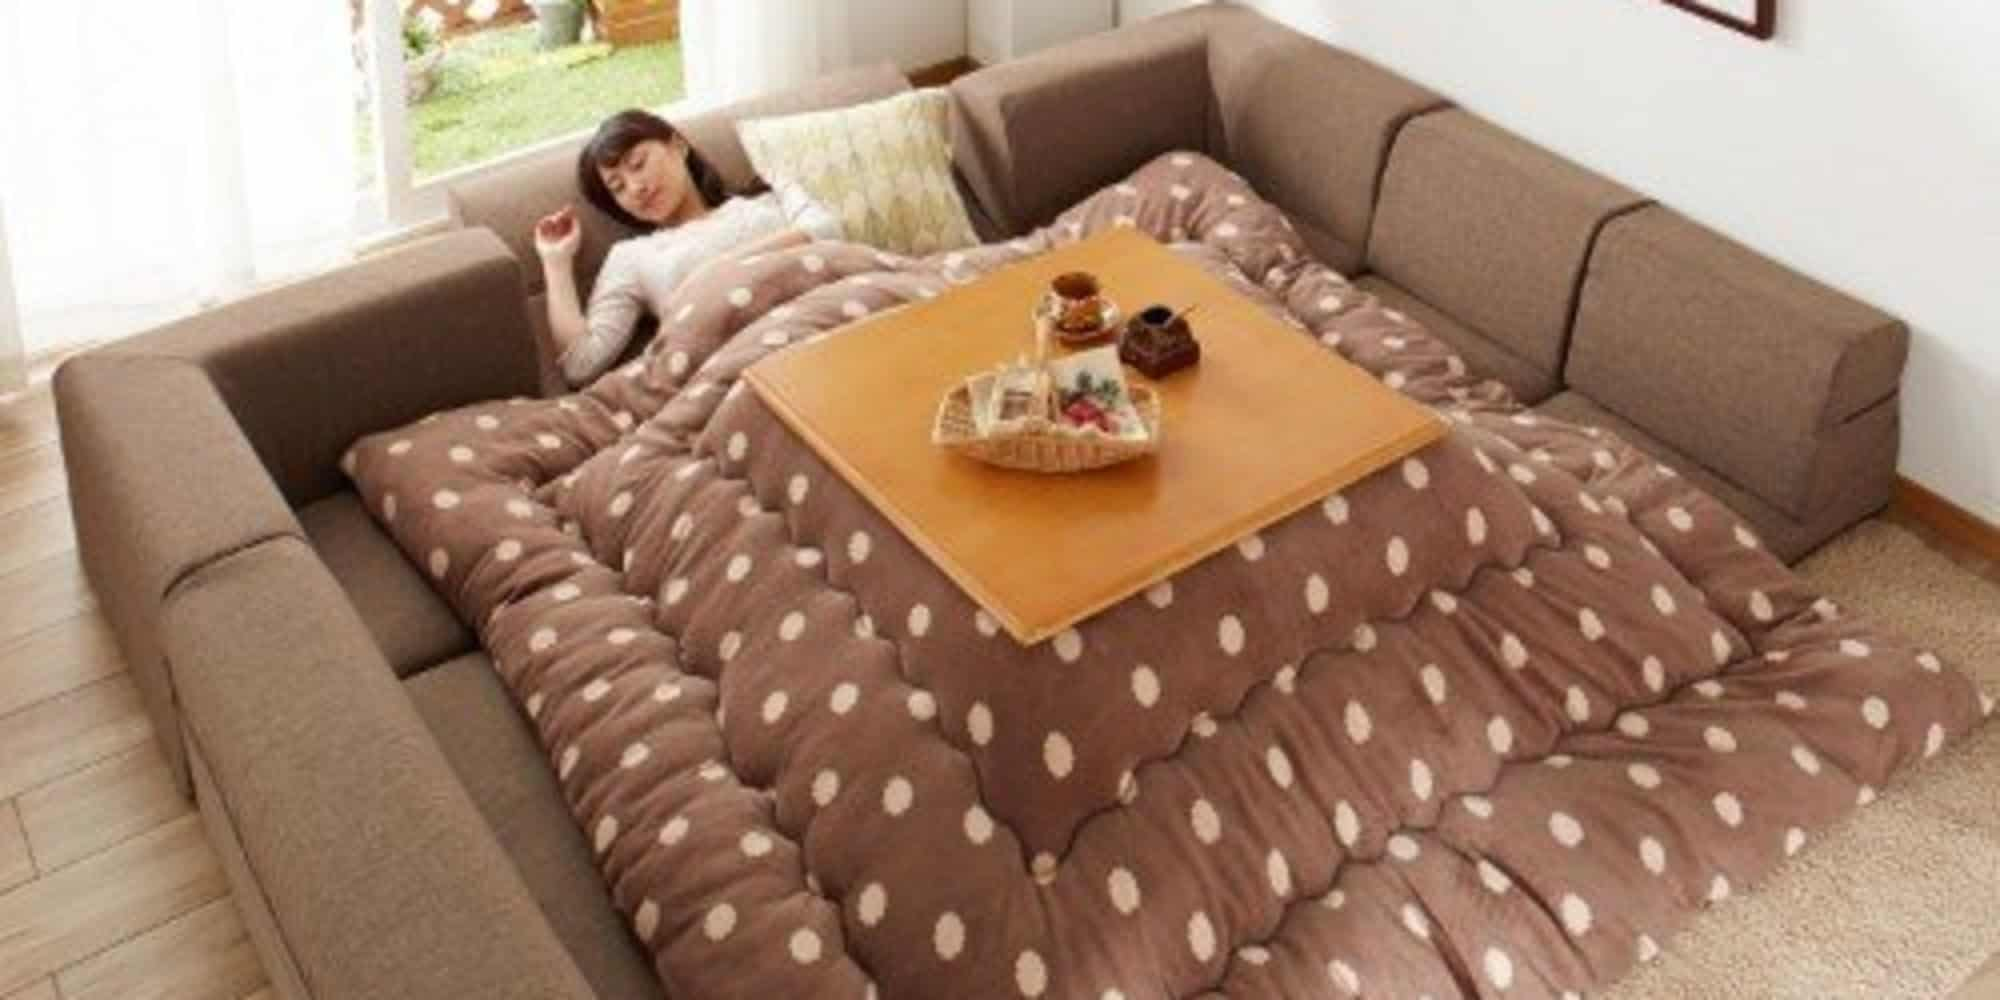 These Cozy Anese Kotatsu Sofa Beds Provide Ultimate Relaxation Awesomejelly